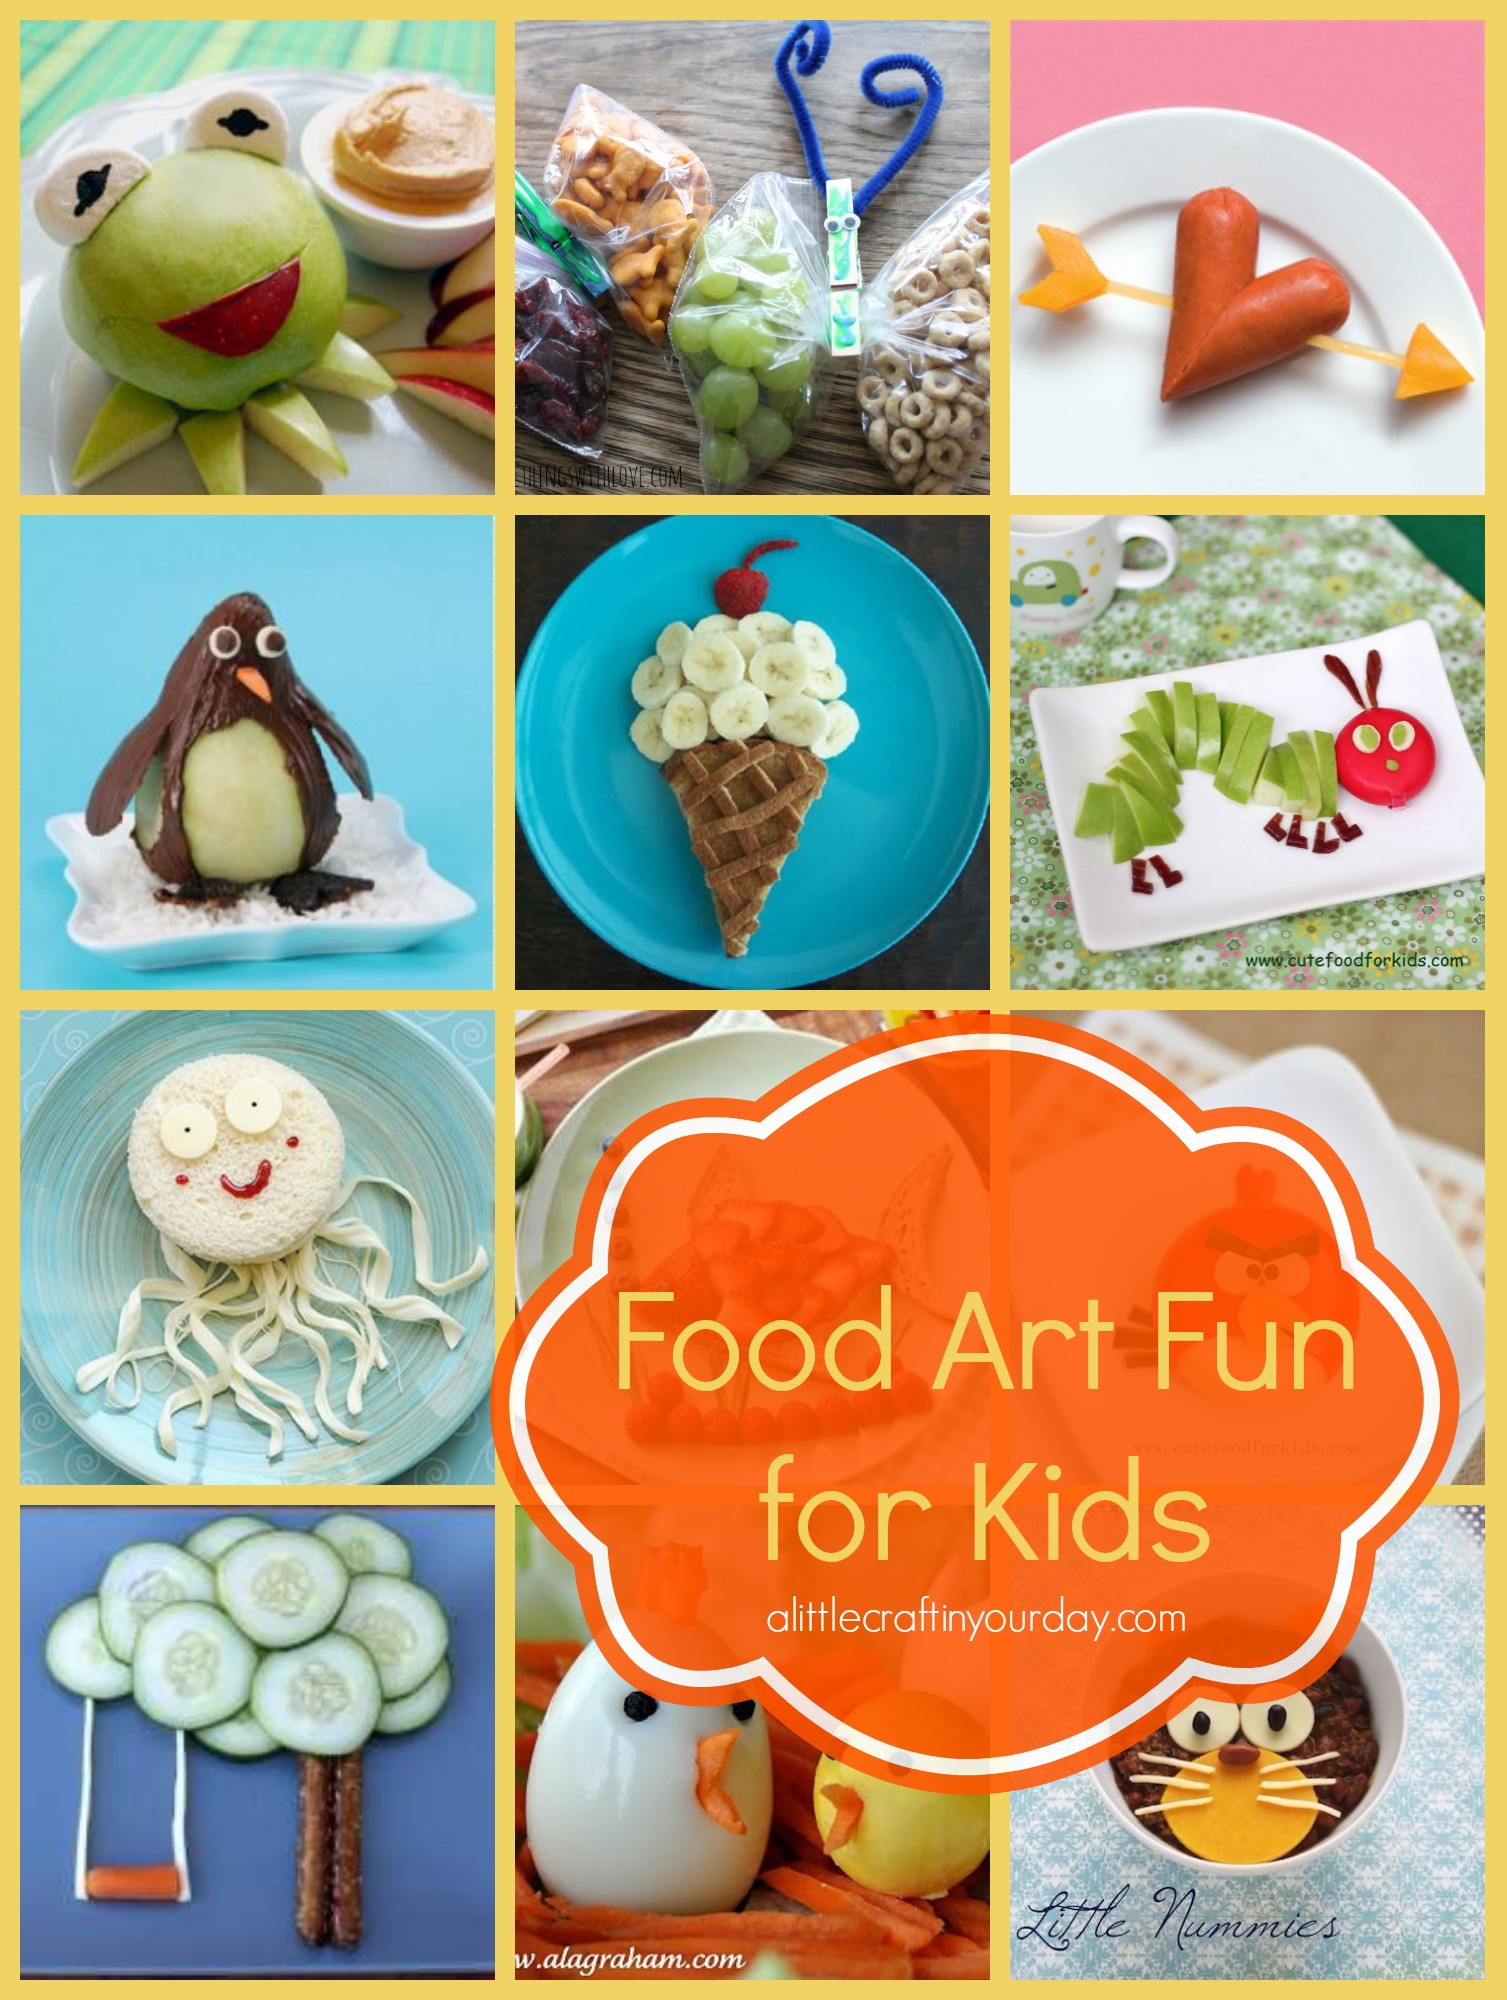 Food art fun for kids a little craft in your daya little for Fun kid food crafts